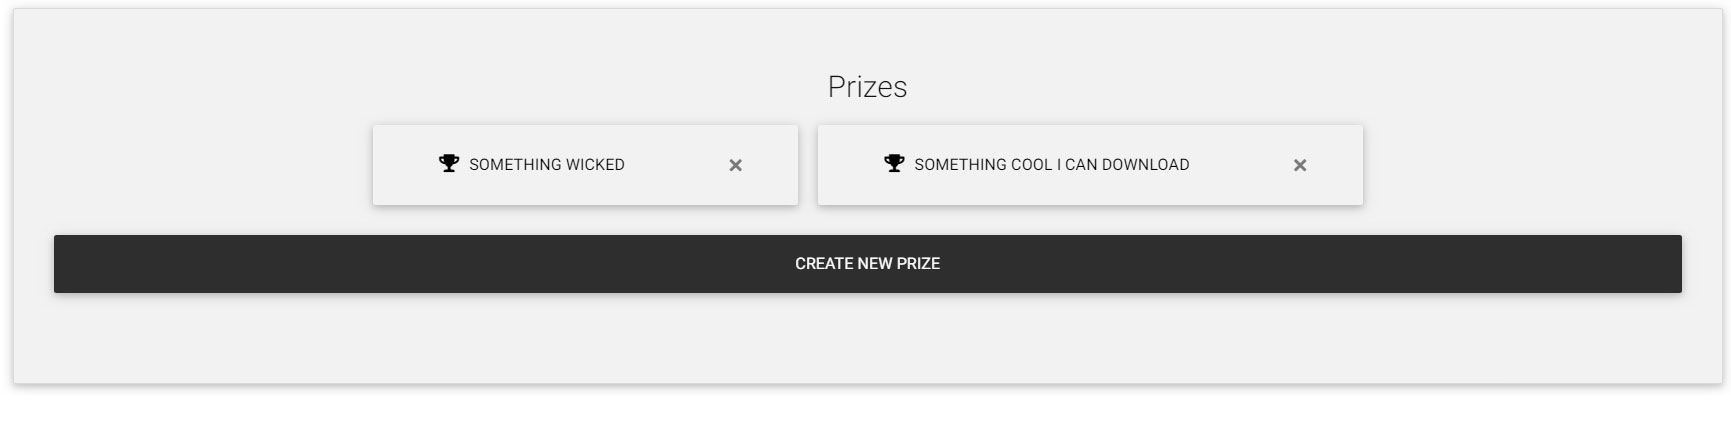 Your prizes, edit, delete or create more prizes